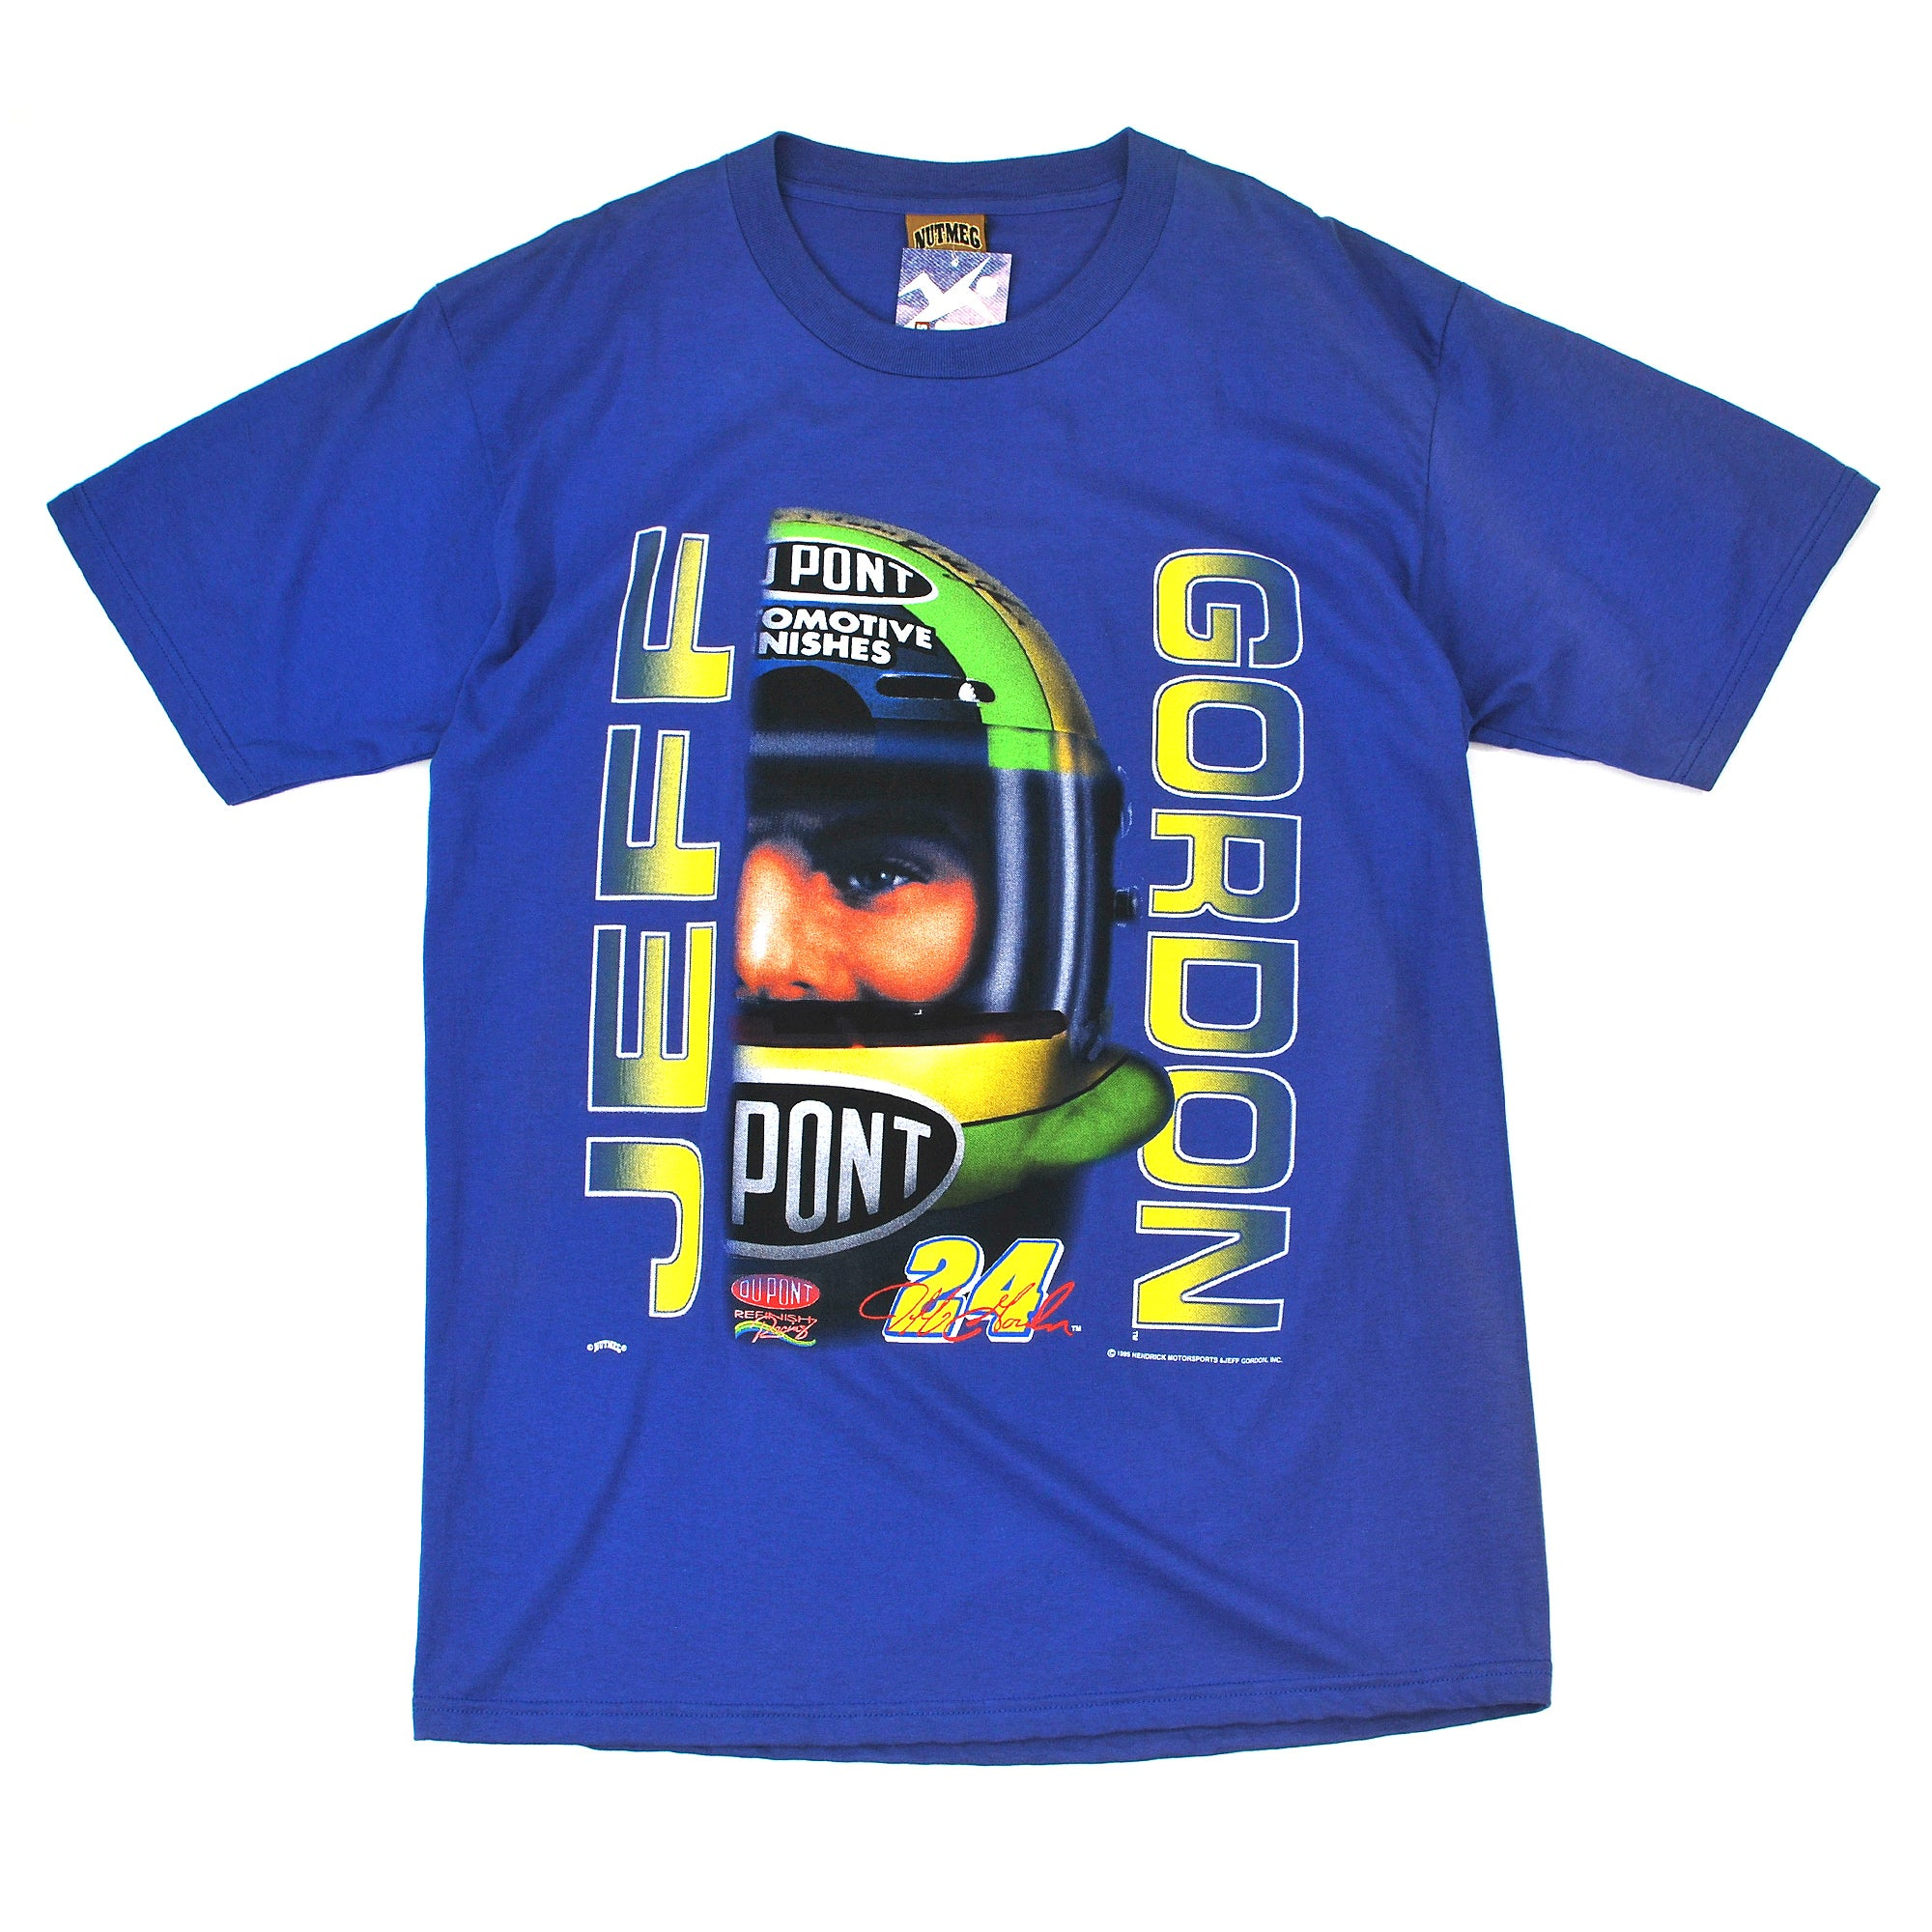 Vintage Jeff Gordon Tee